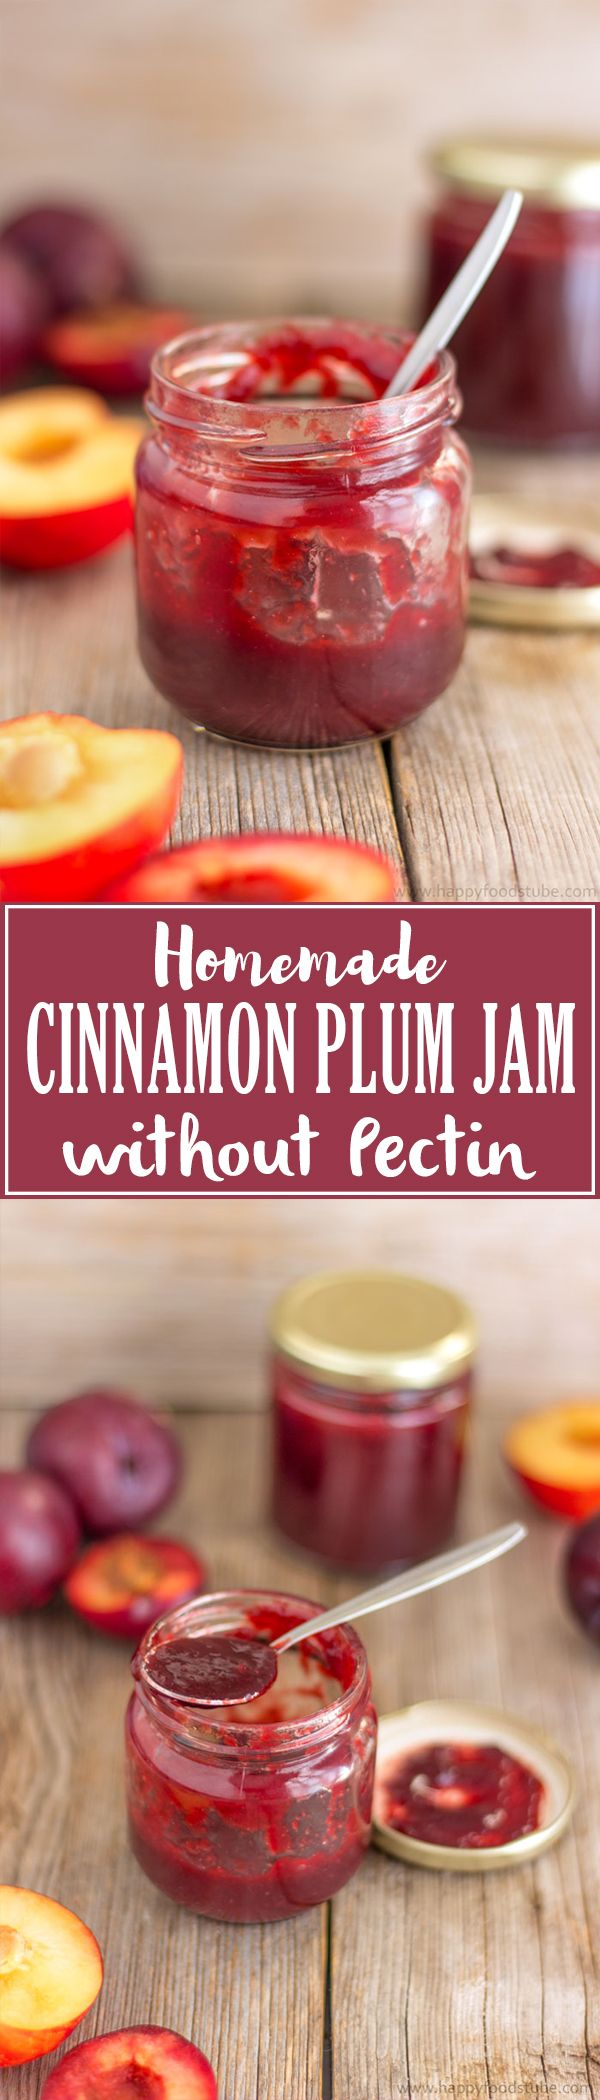 Homemade Low Sugar Cinnamon Plum Jam. Super Easy and Healthy Jam Recipe Without Pectin. Only 3 Ingredients!   happyfoodstube.com